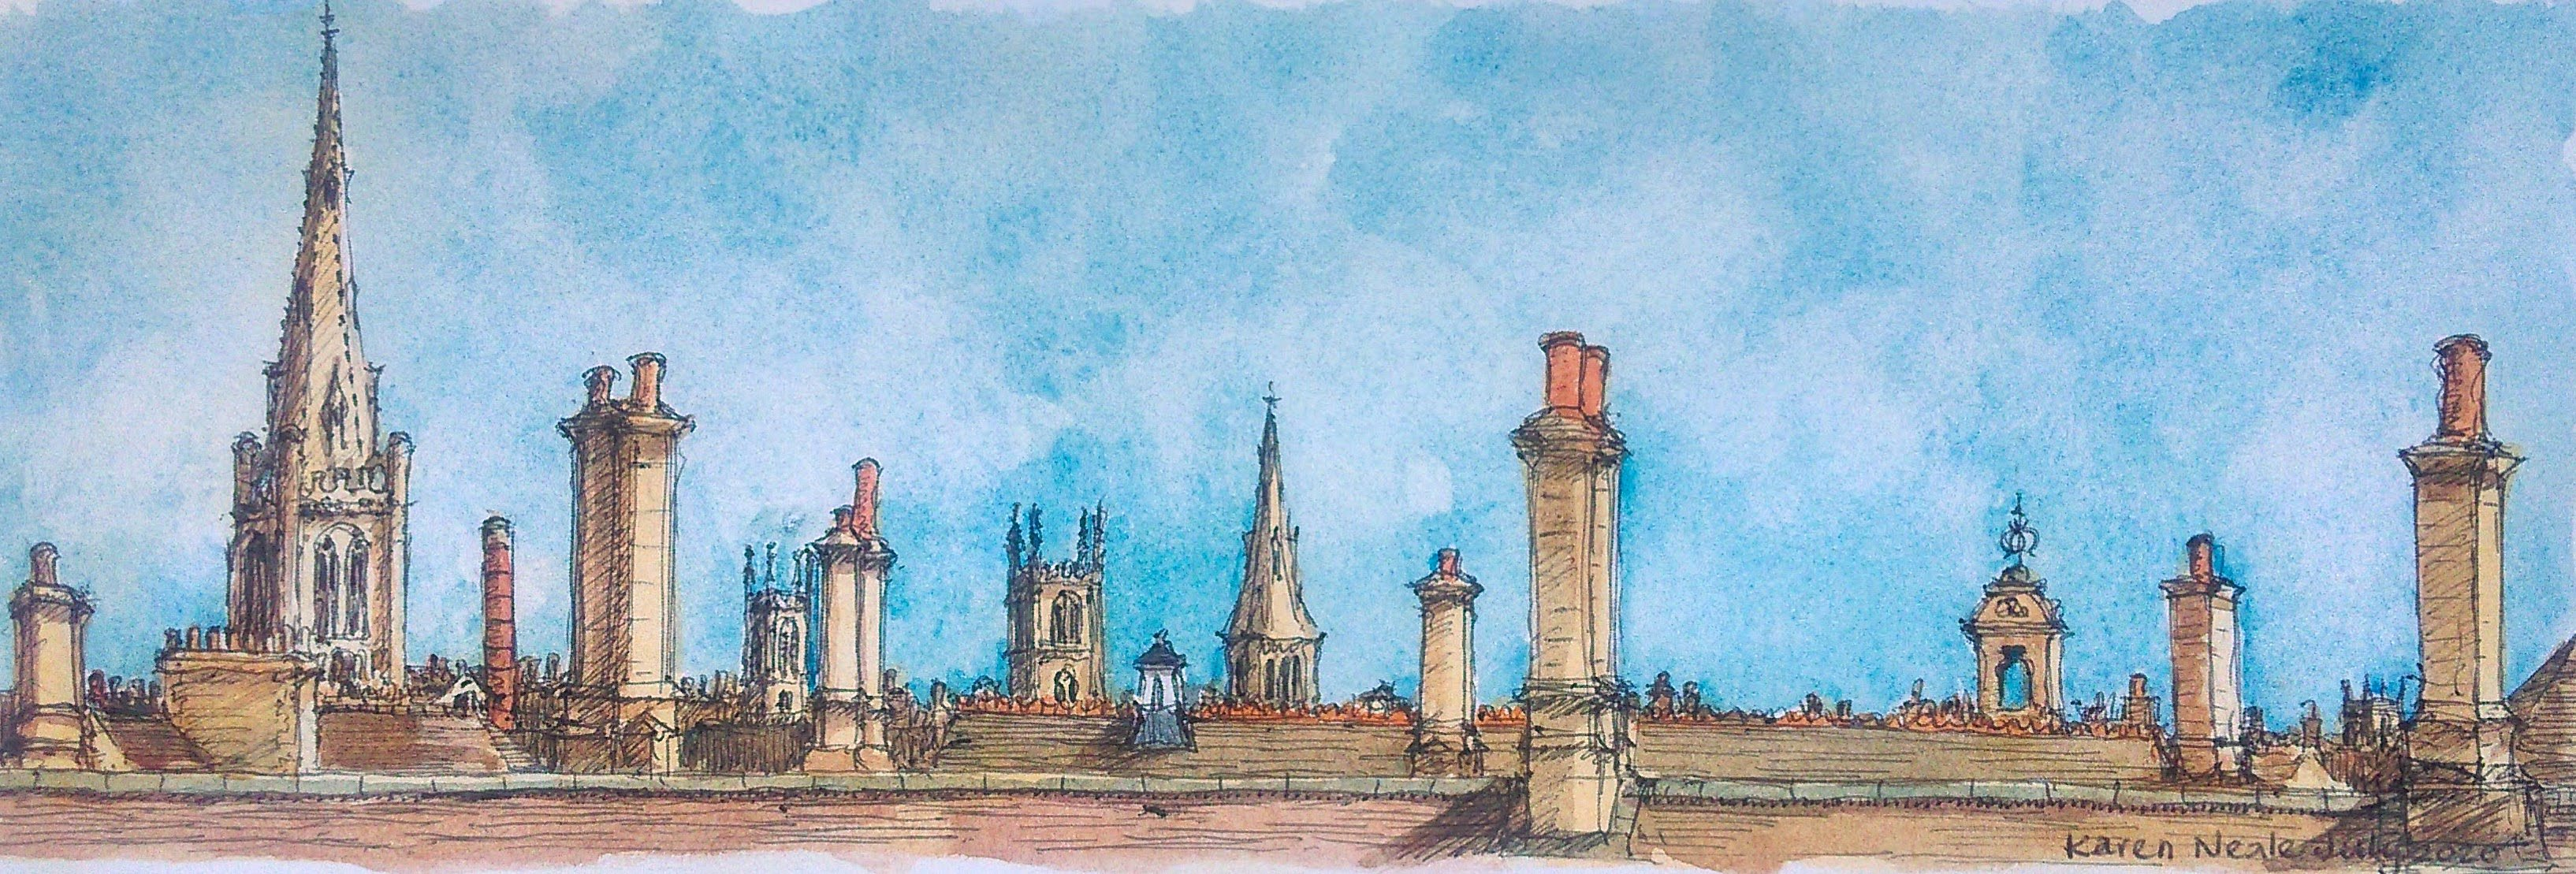 Home, News & Events. 20-chimneys-church-spires